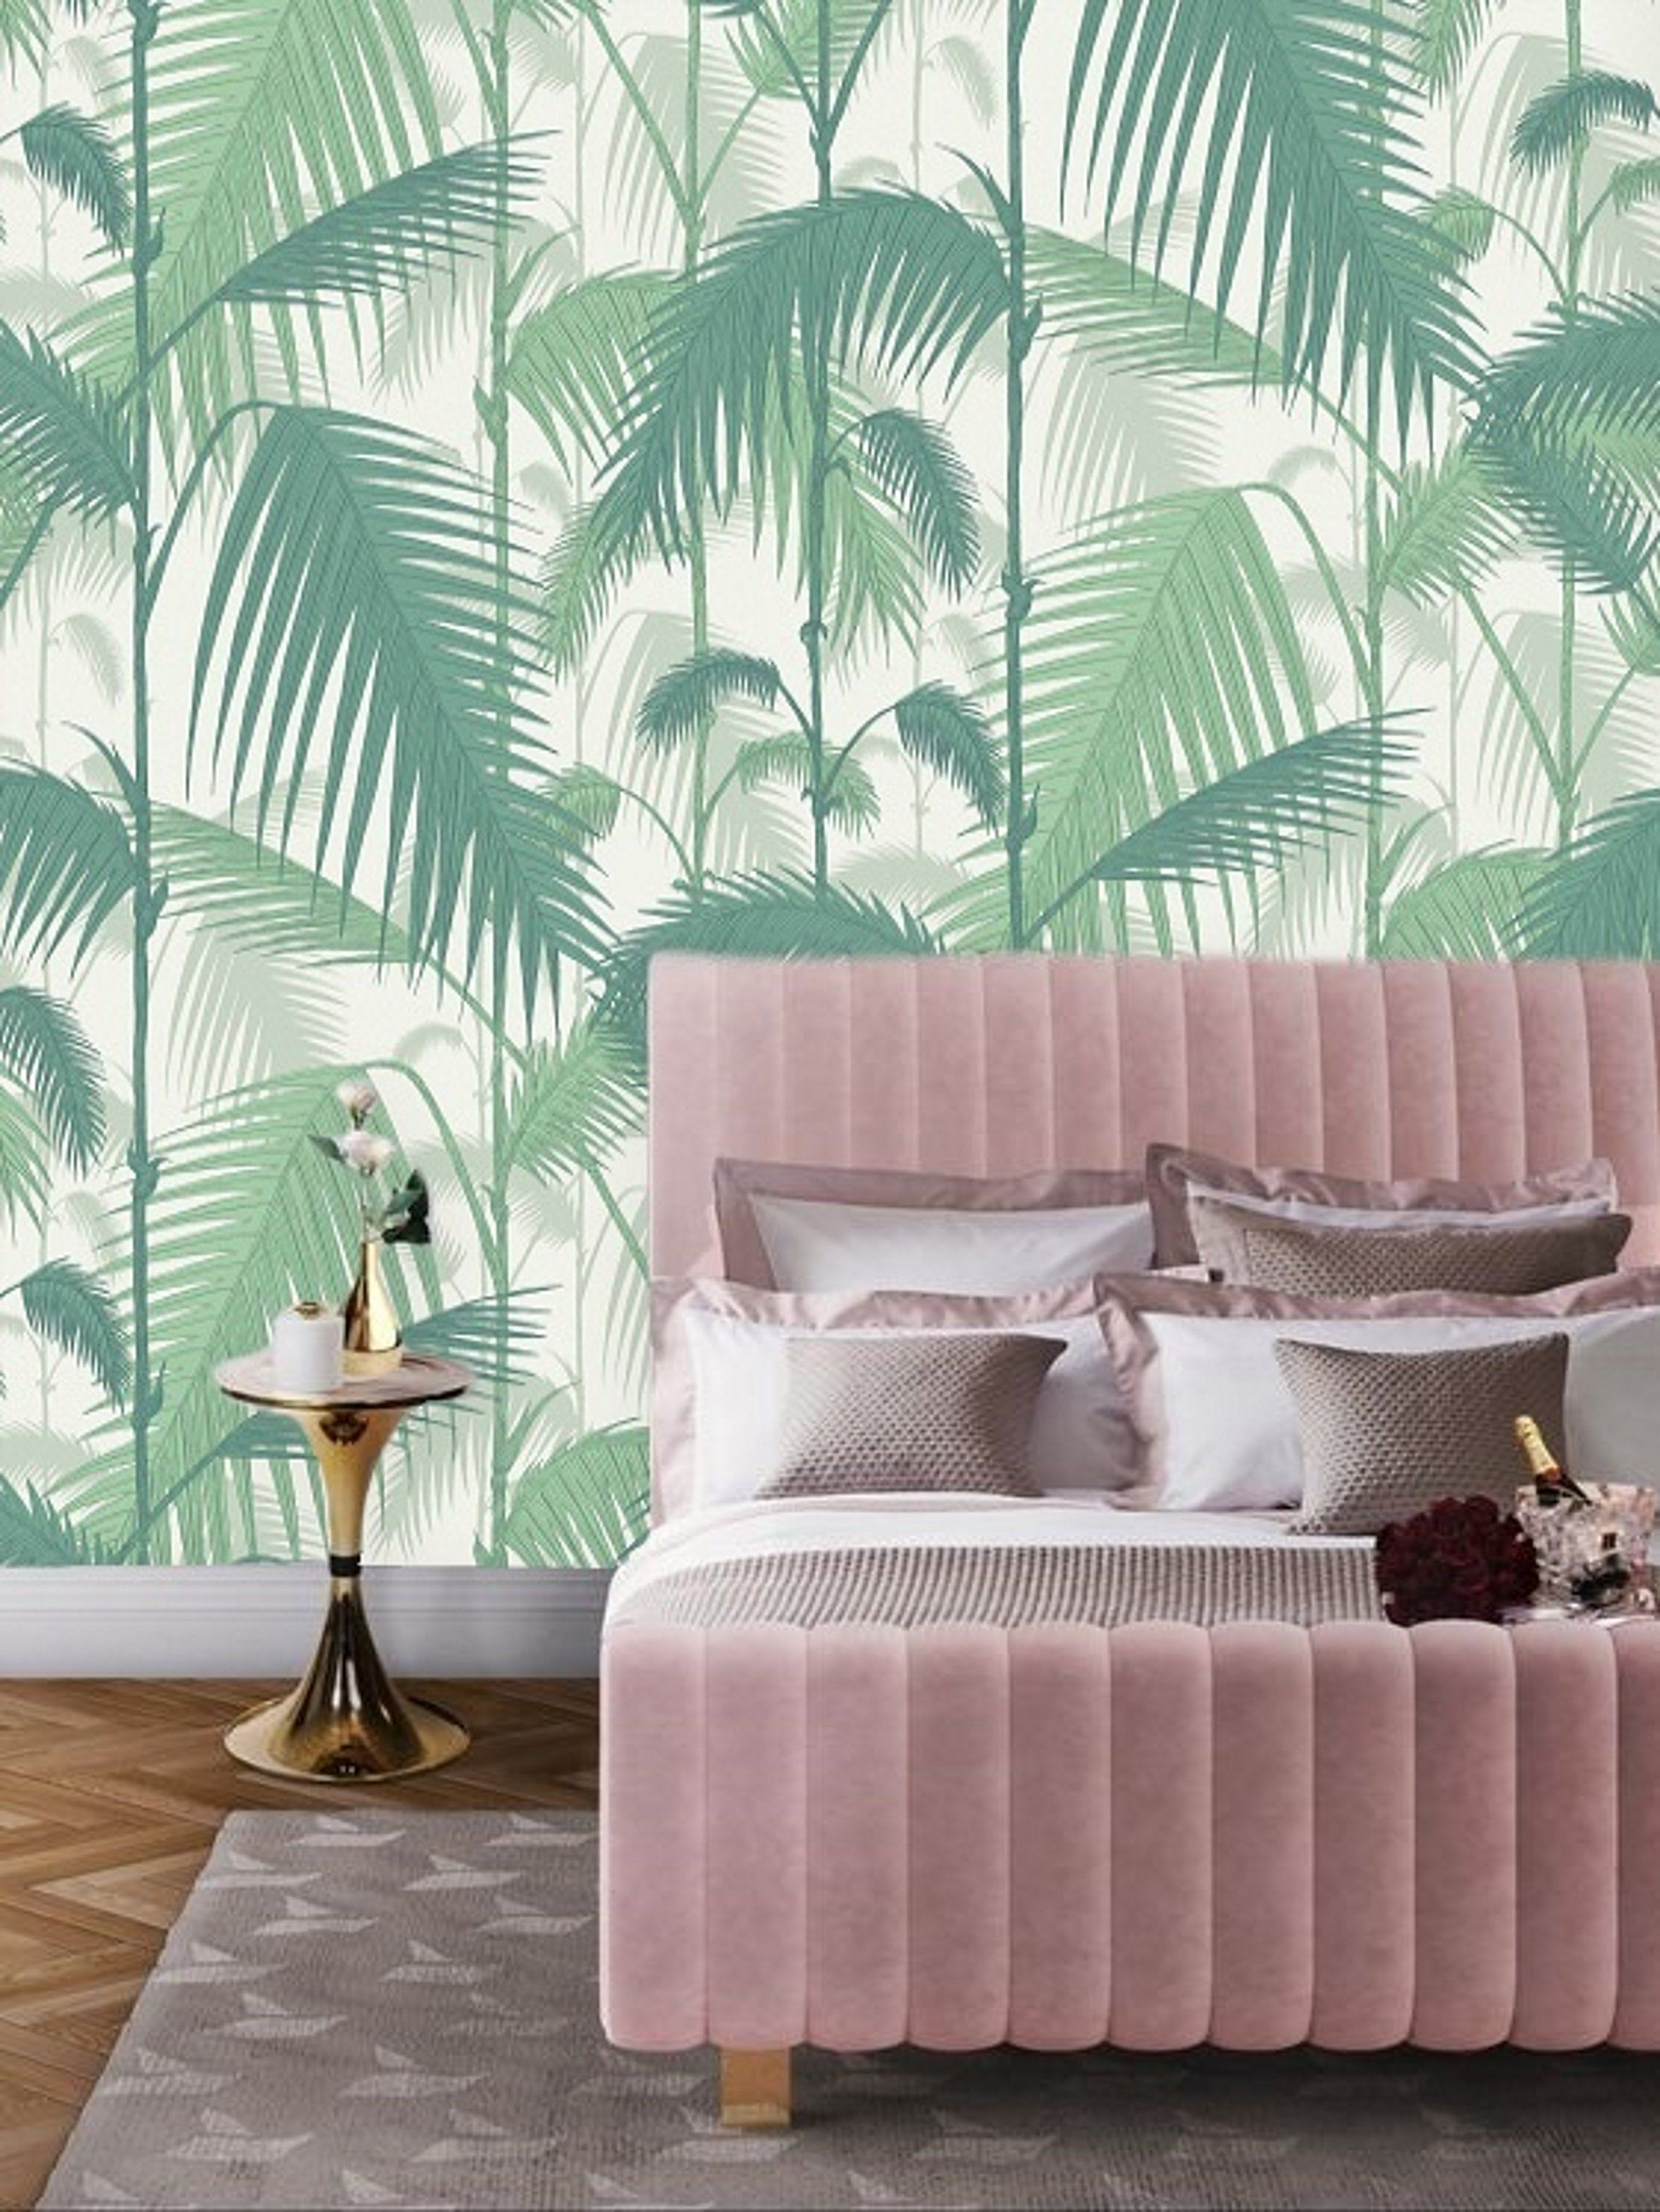 Remove Wallpaper Mural Peel and Stick, Palm Leaf Wallpaper